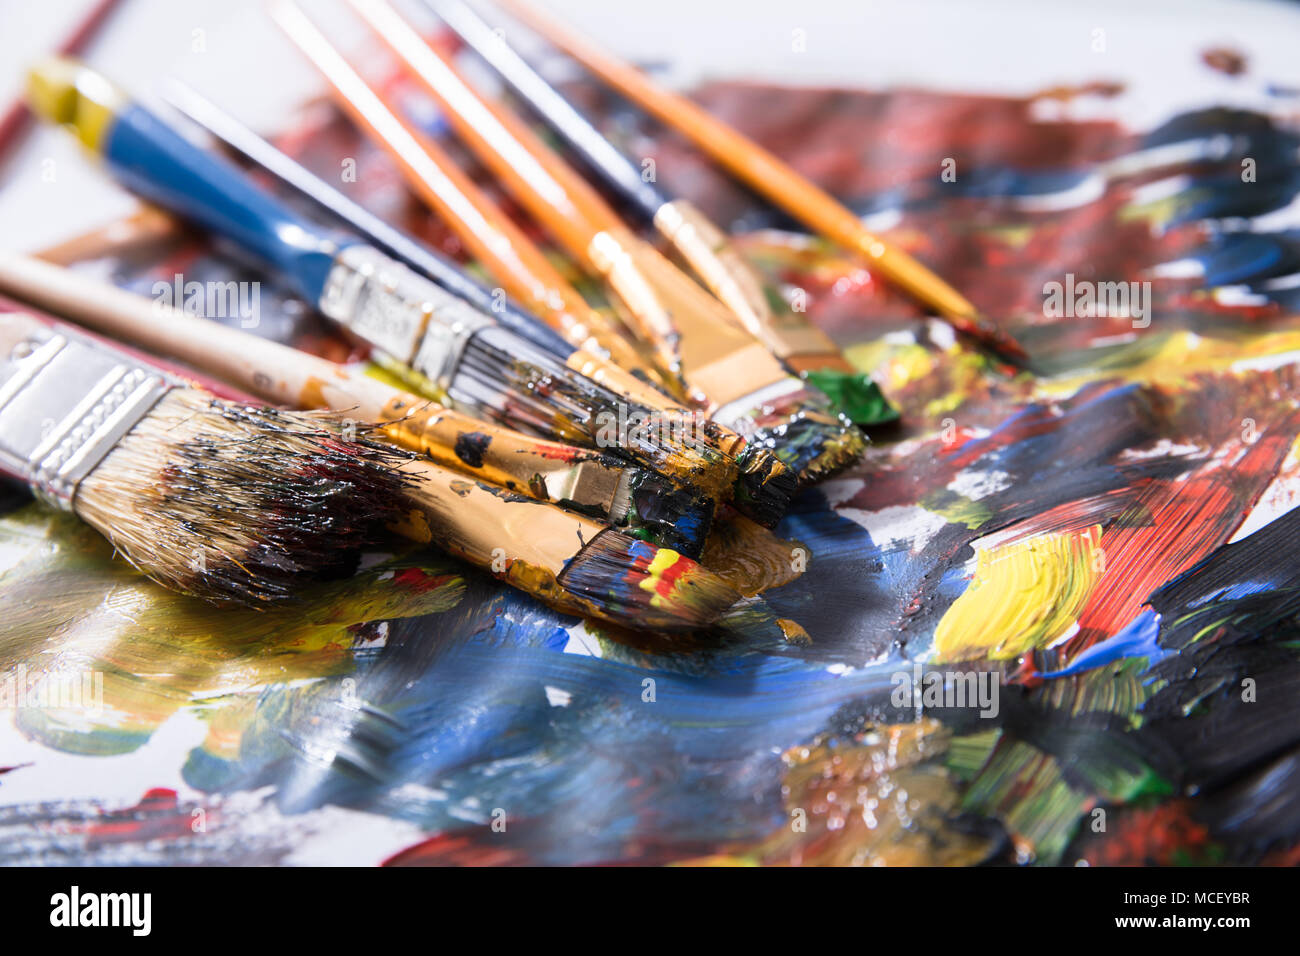 Close-up Of Various Messy Paintbrushes With Multi Colored Paint On Canvas Paper - Stock Image